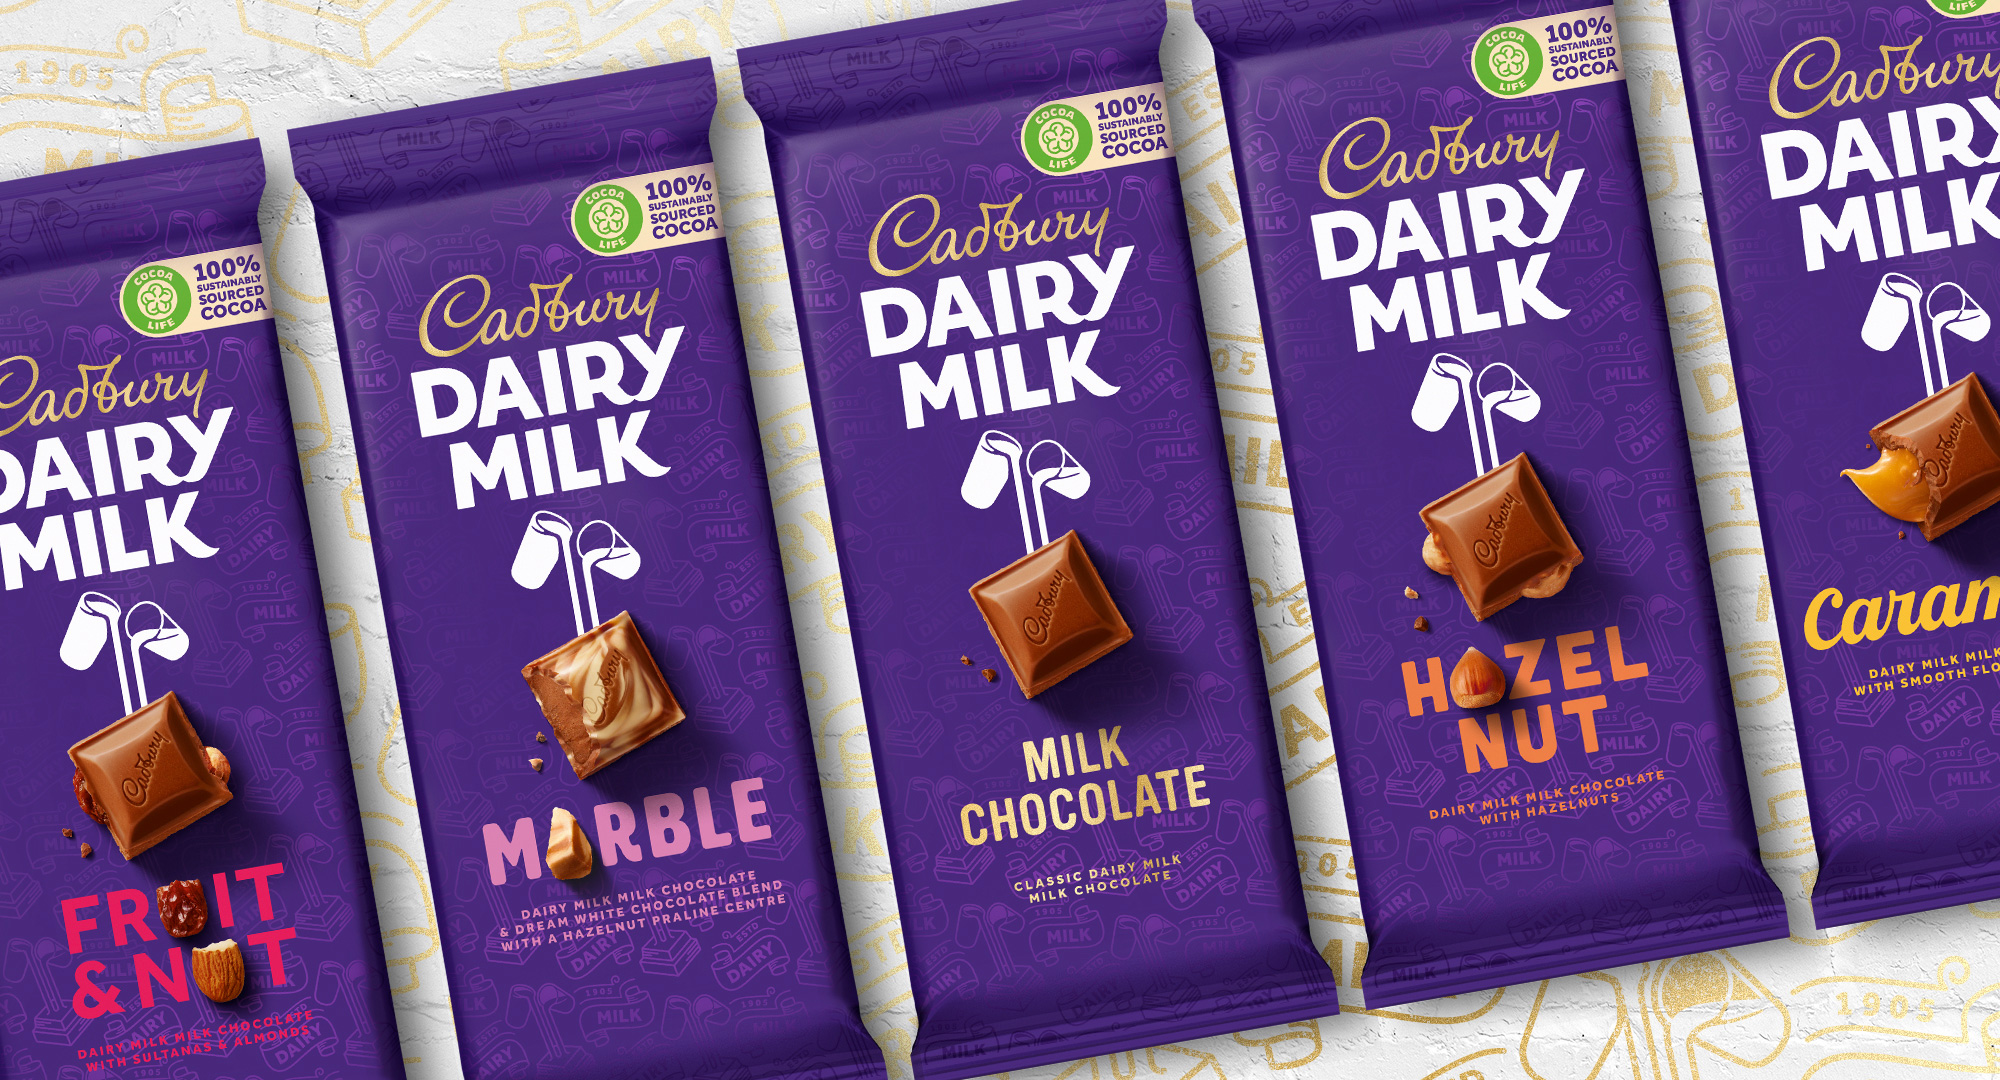 New Logo, Identity, and Packaging for Cadbury by Bulletproof